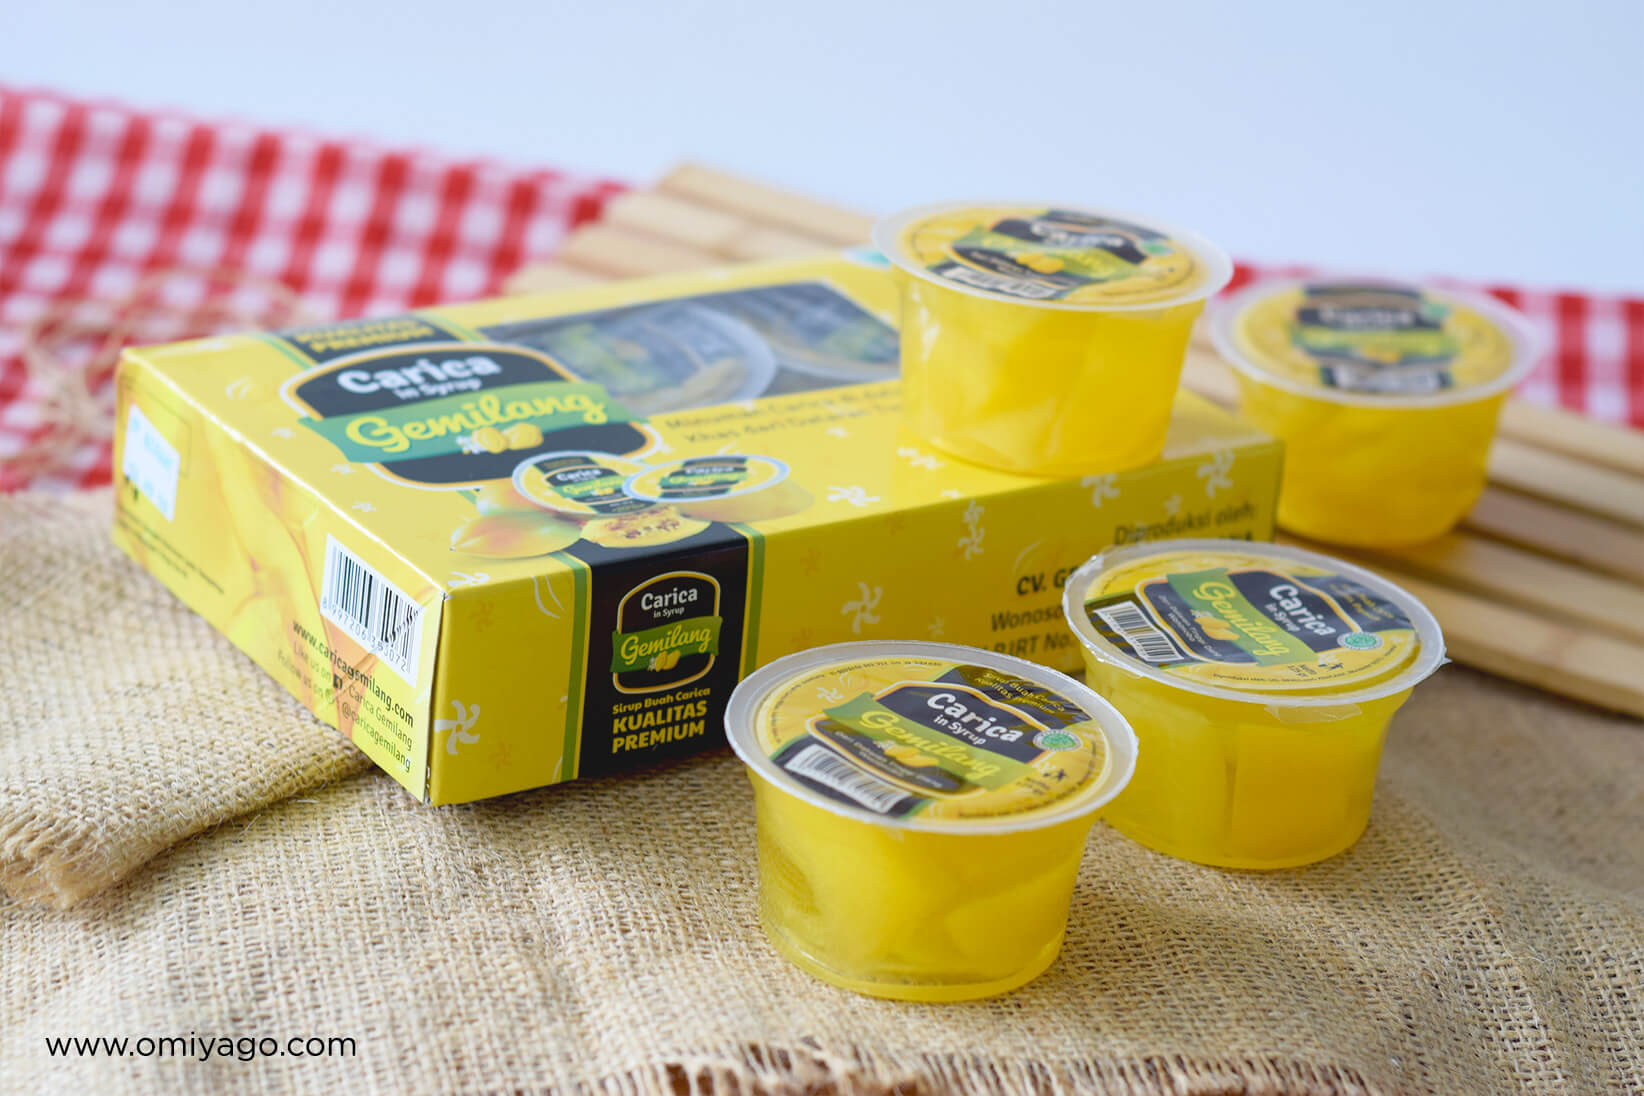 carica-gemilang-6-cup